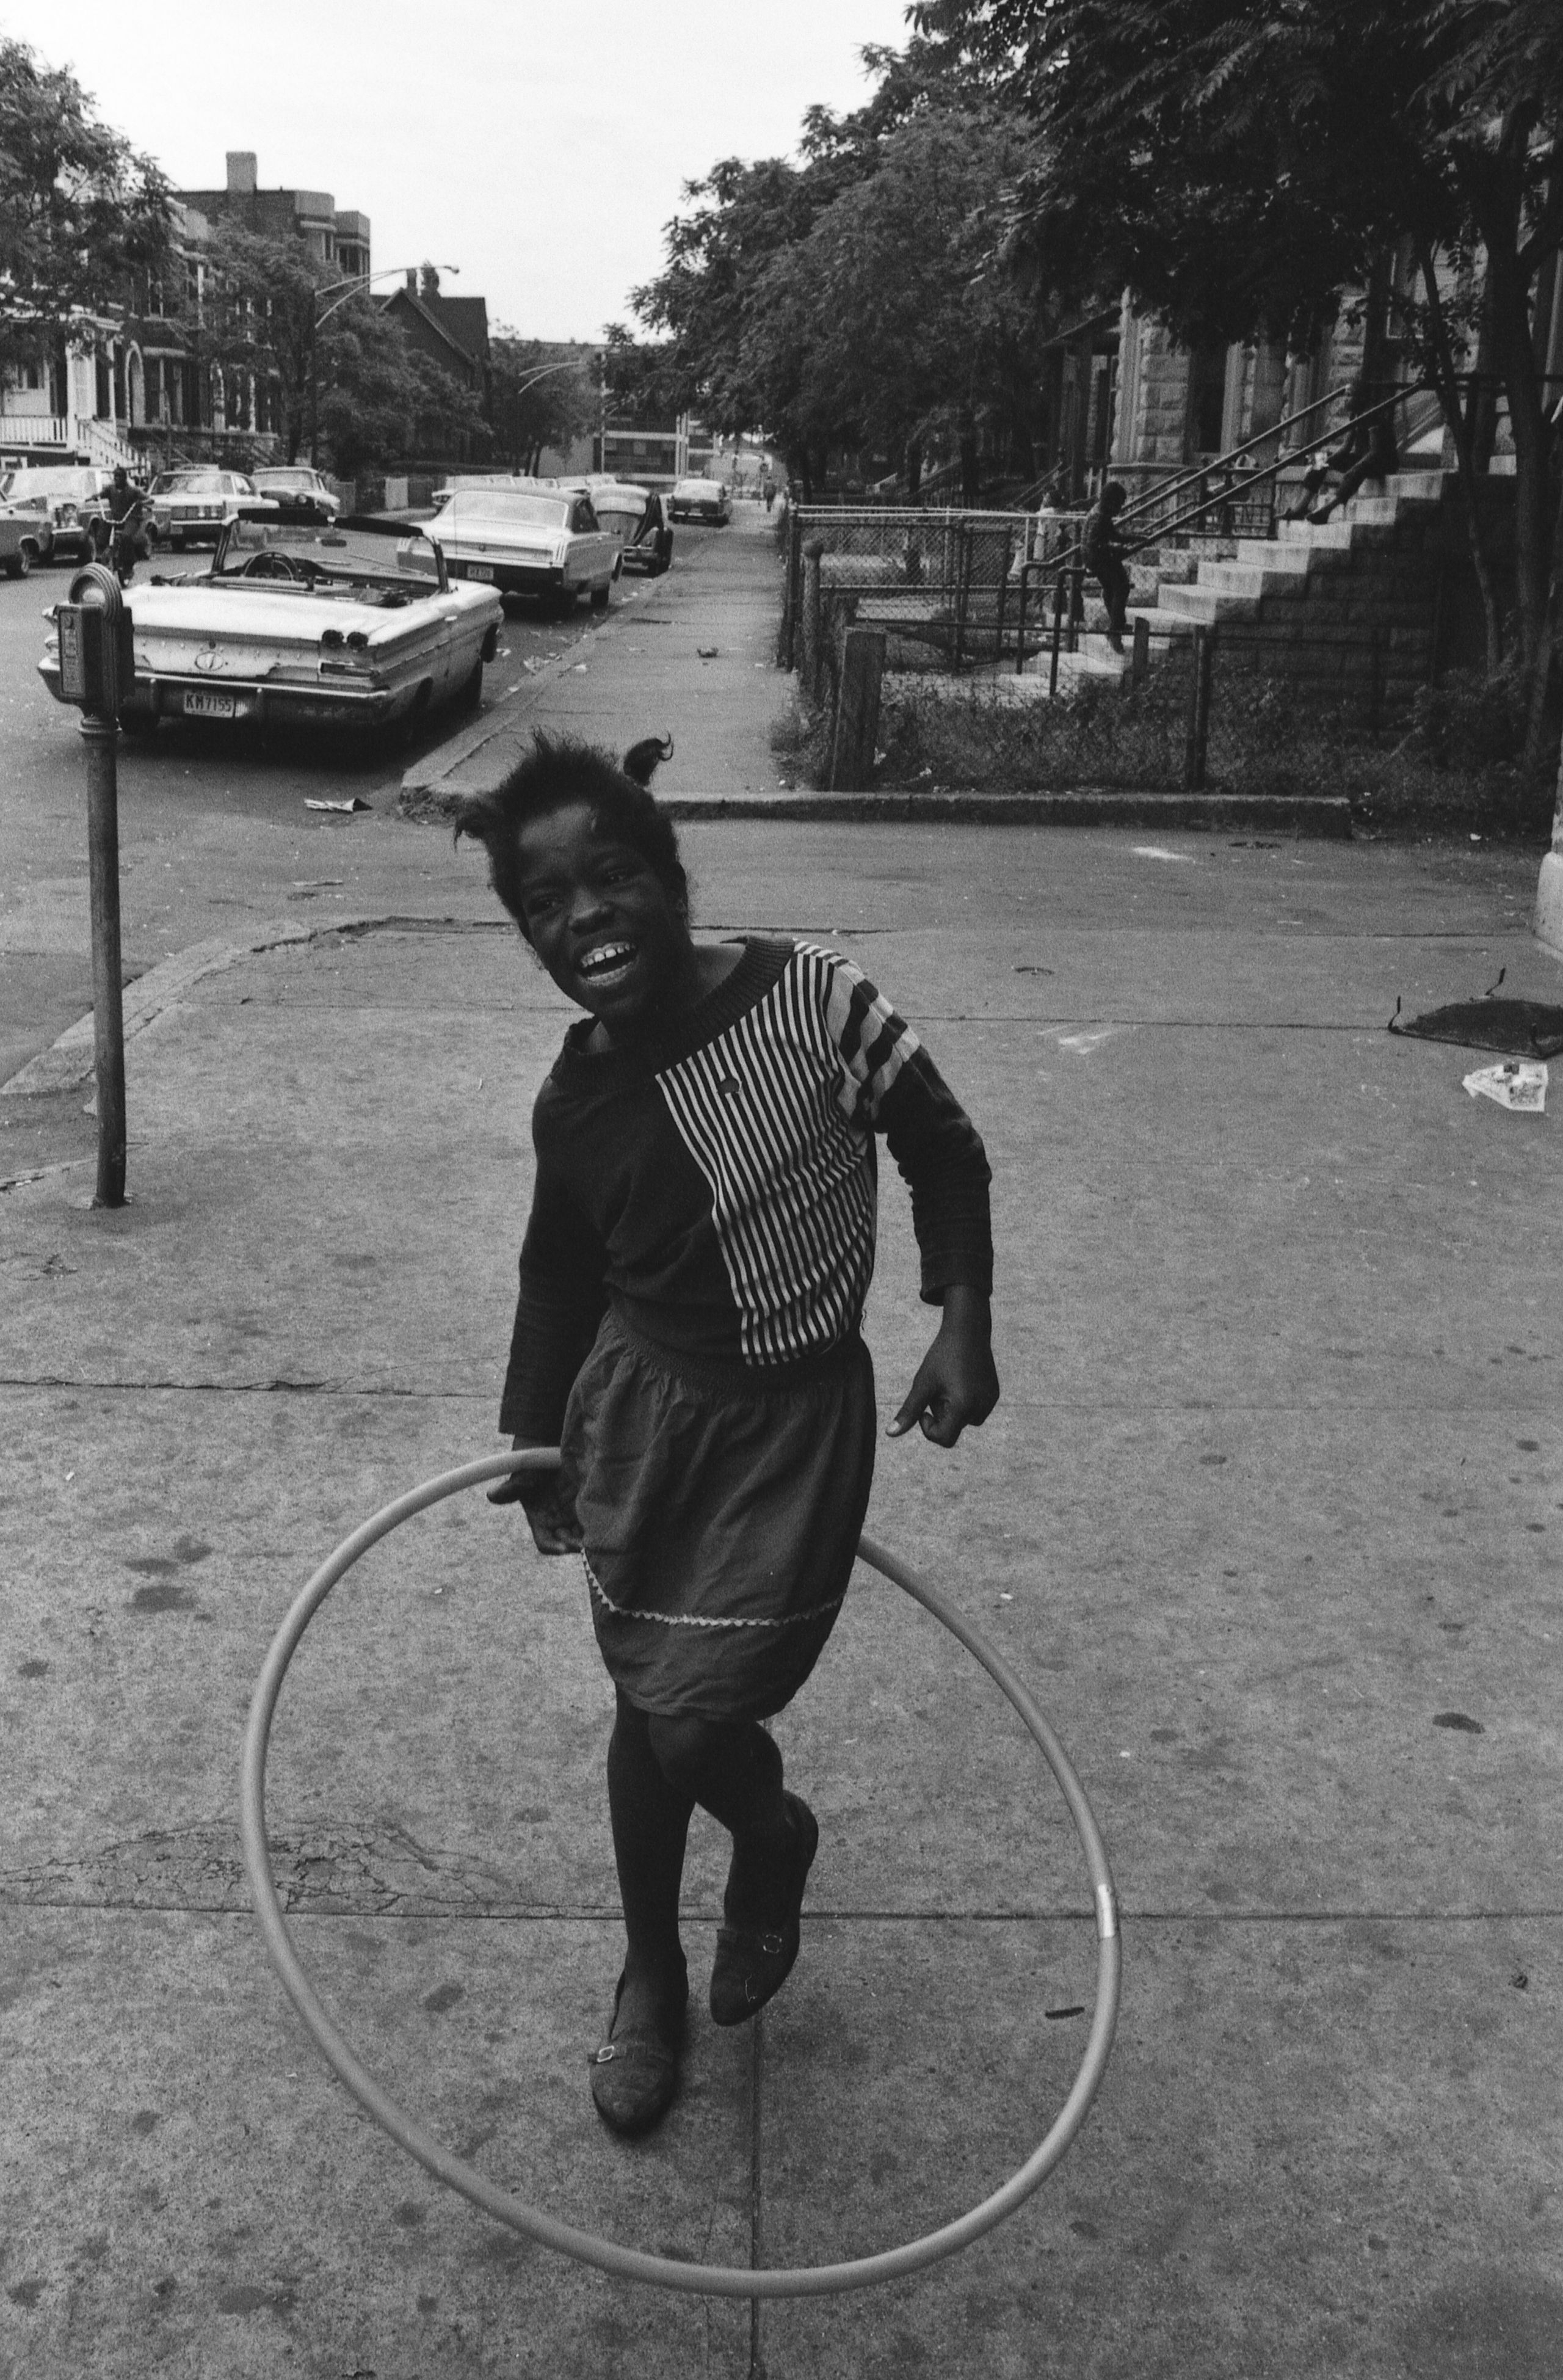 A girl twirls a toy hoop in Chicago sometime in the mid- to late 1960s.